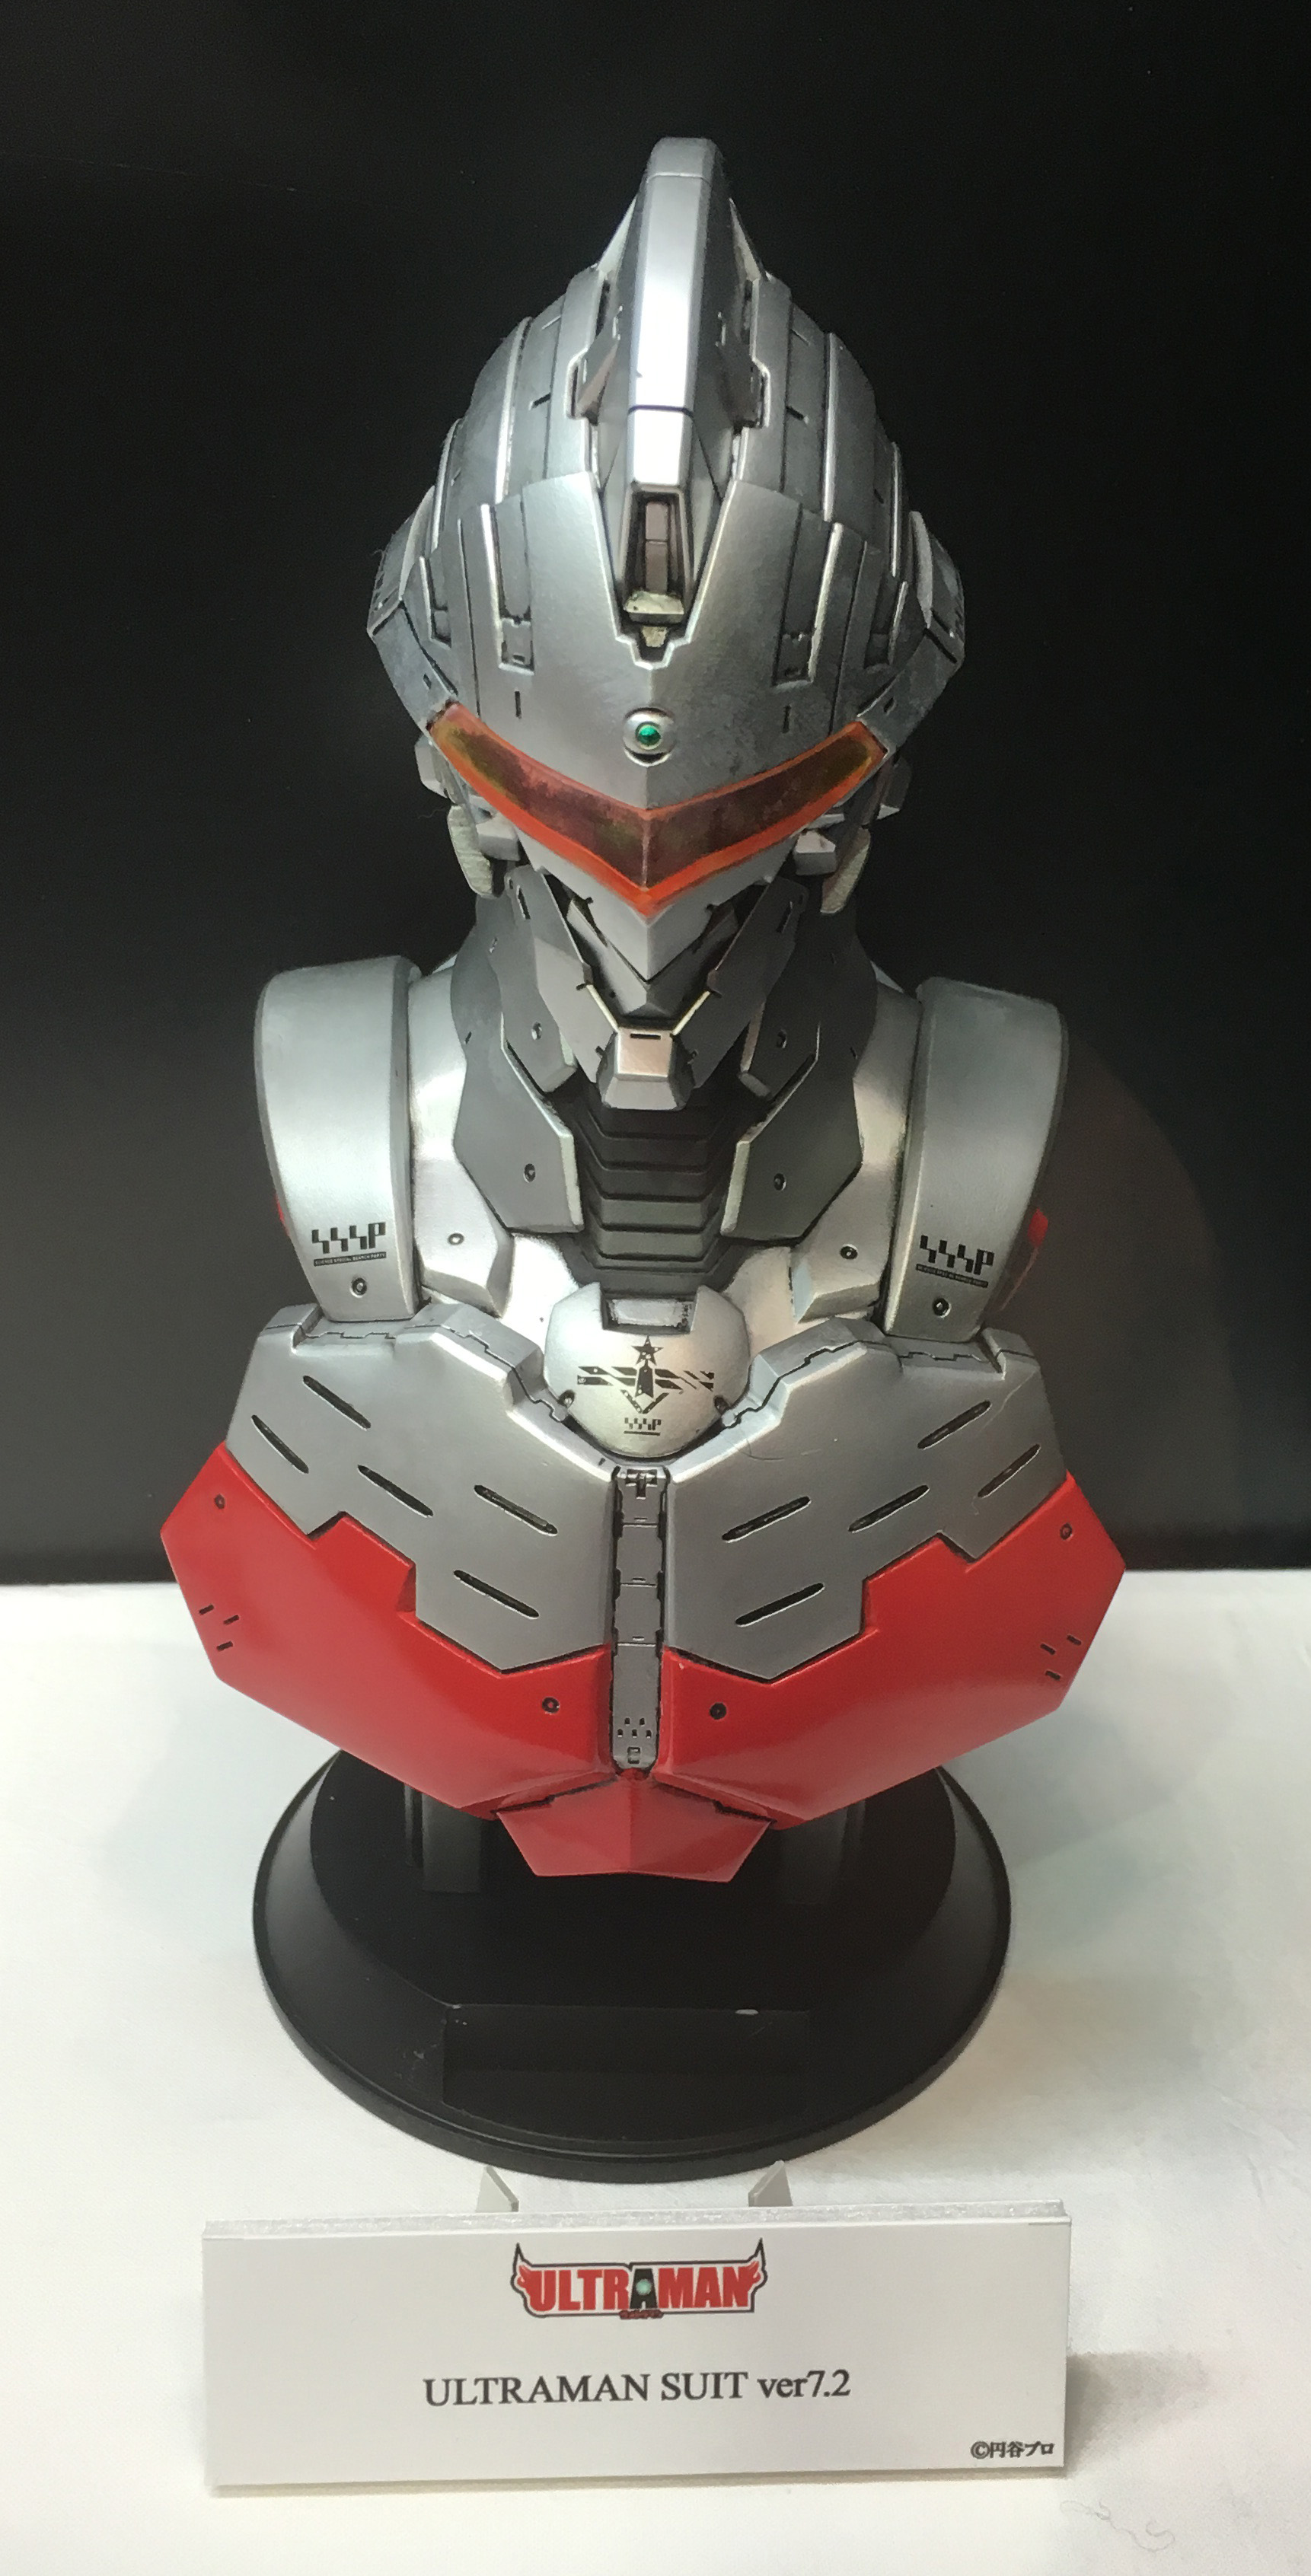 ULTRAMAN SUIT ver 7.2の胸像